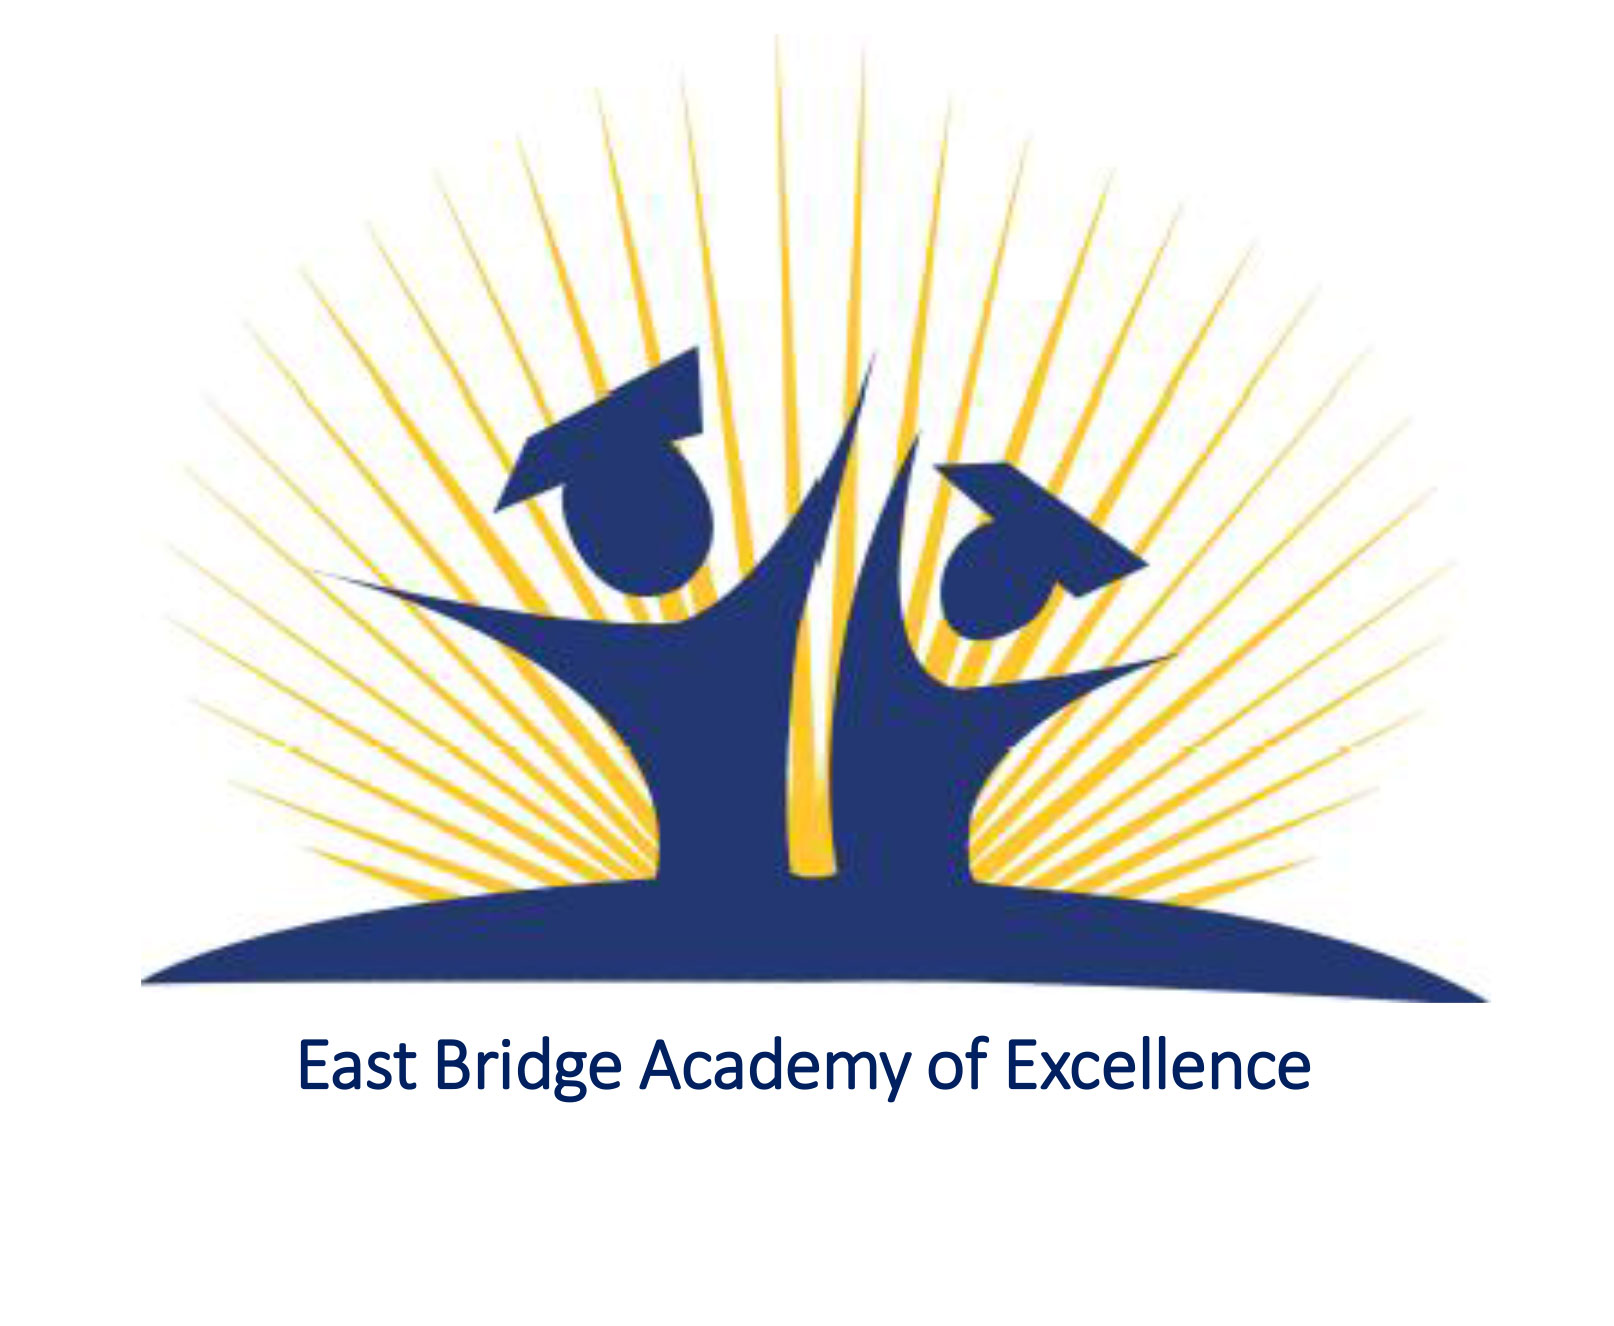 East Bridge Academy